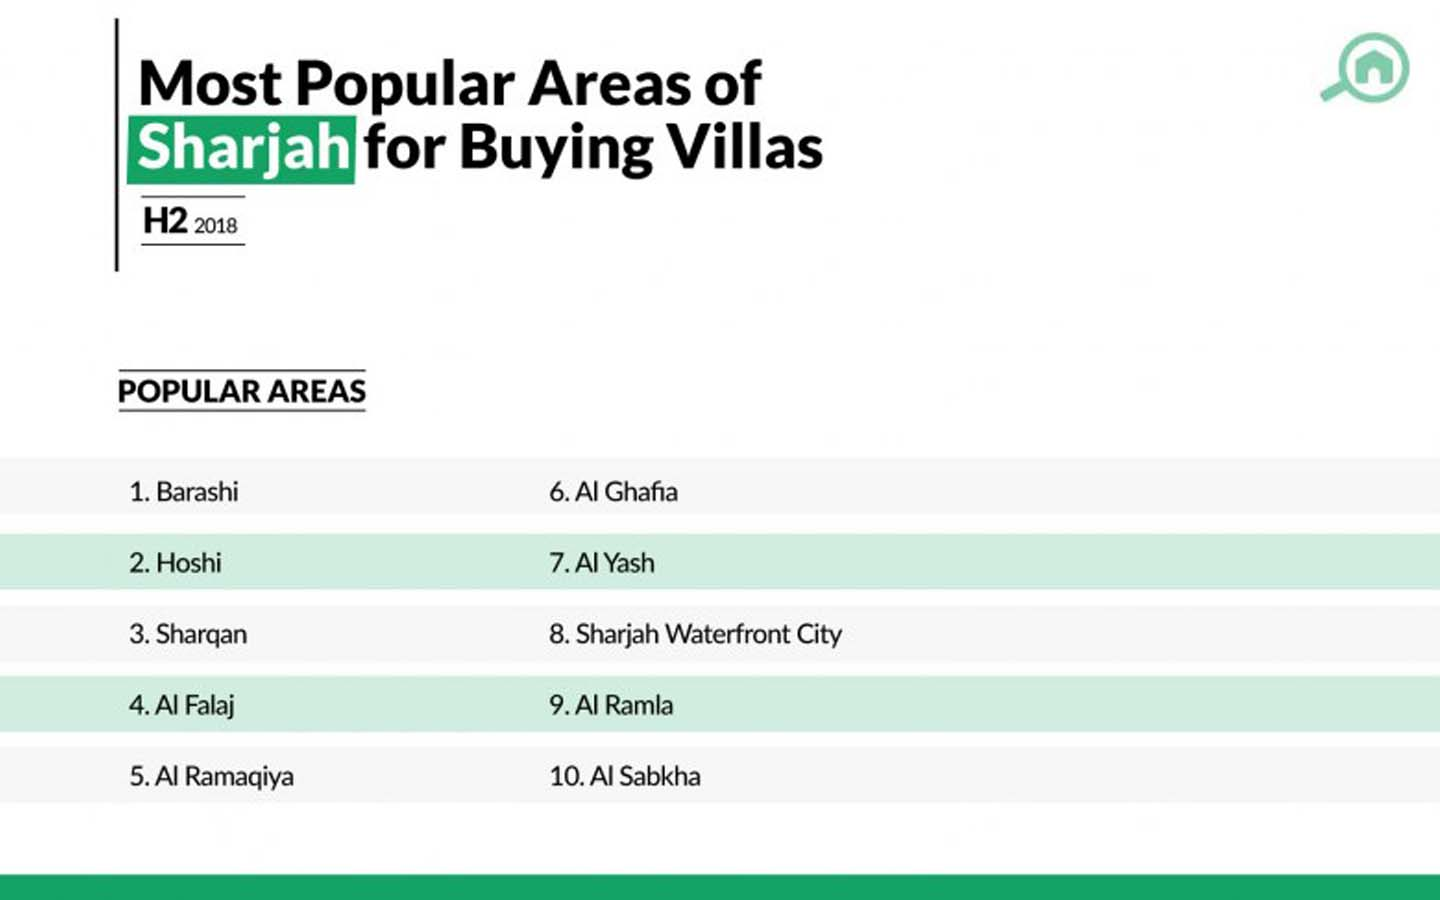 Barashi is top on the list for buying villas in Sharjah.